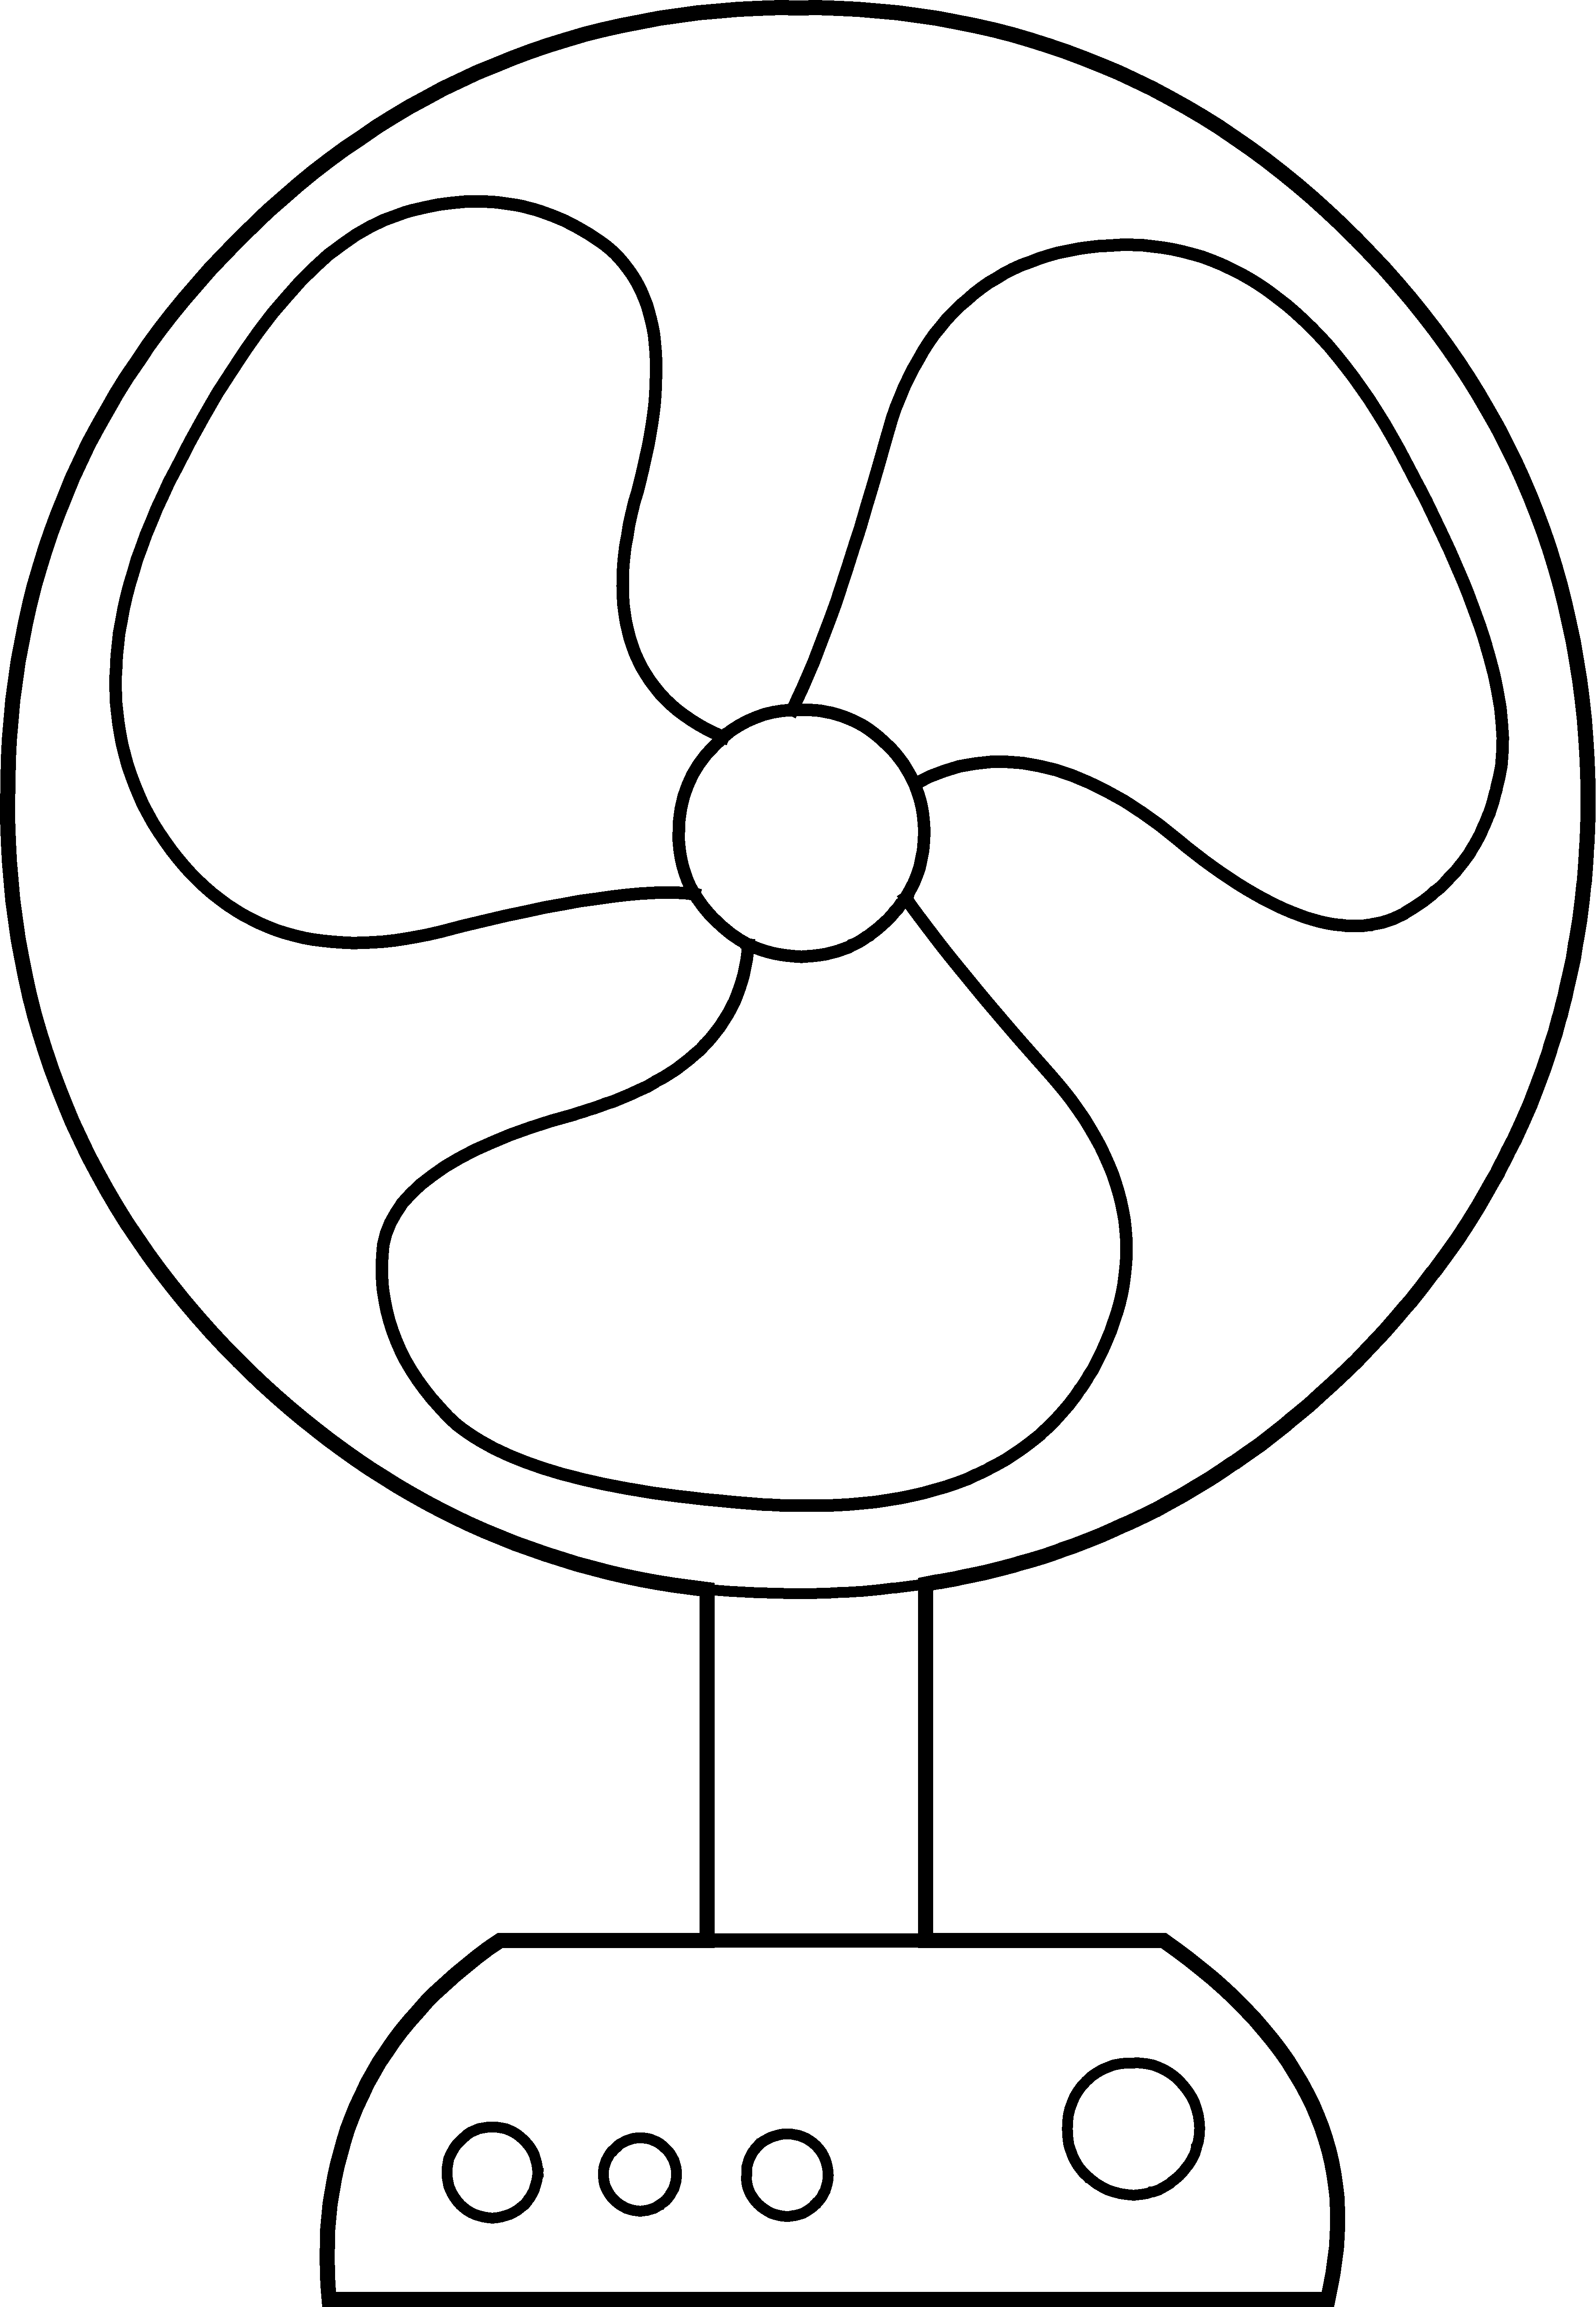 Electric line art free. Coloring clipart fan